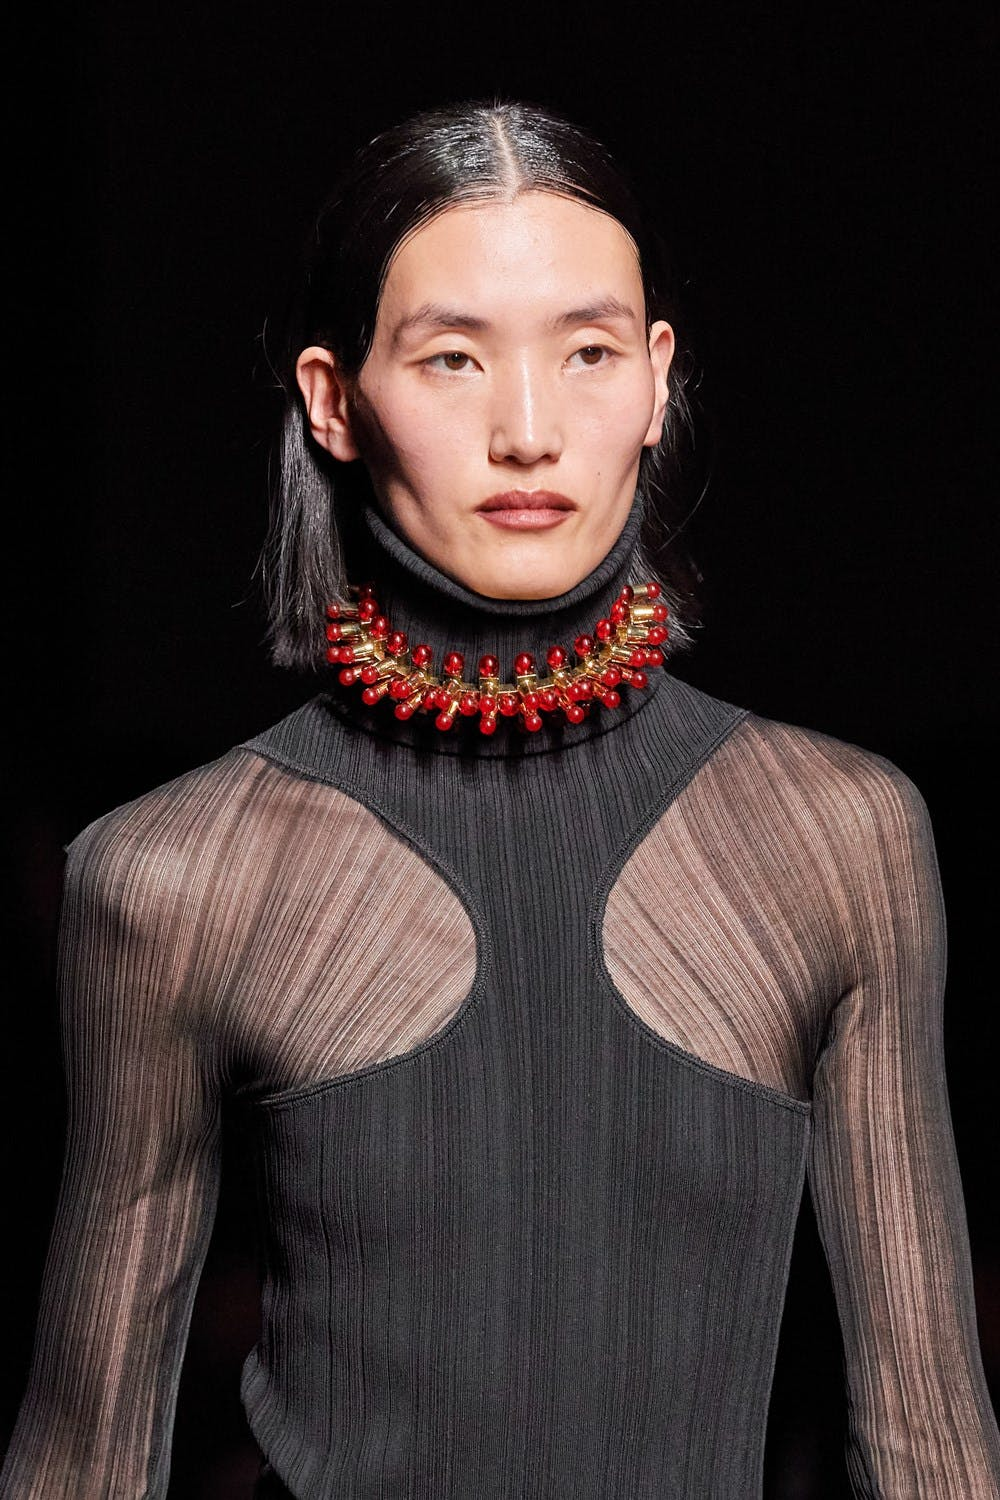 Mugler Runway Details Turtleneck Sheer Cutout Dress Chunky Choker in Gold Fall 20 RTW